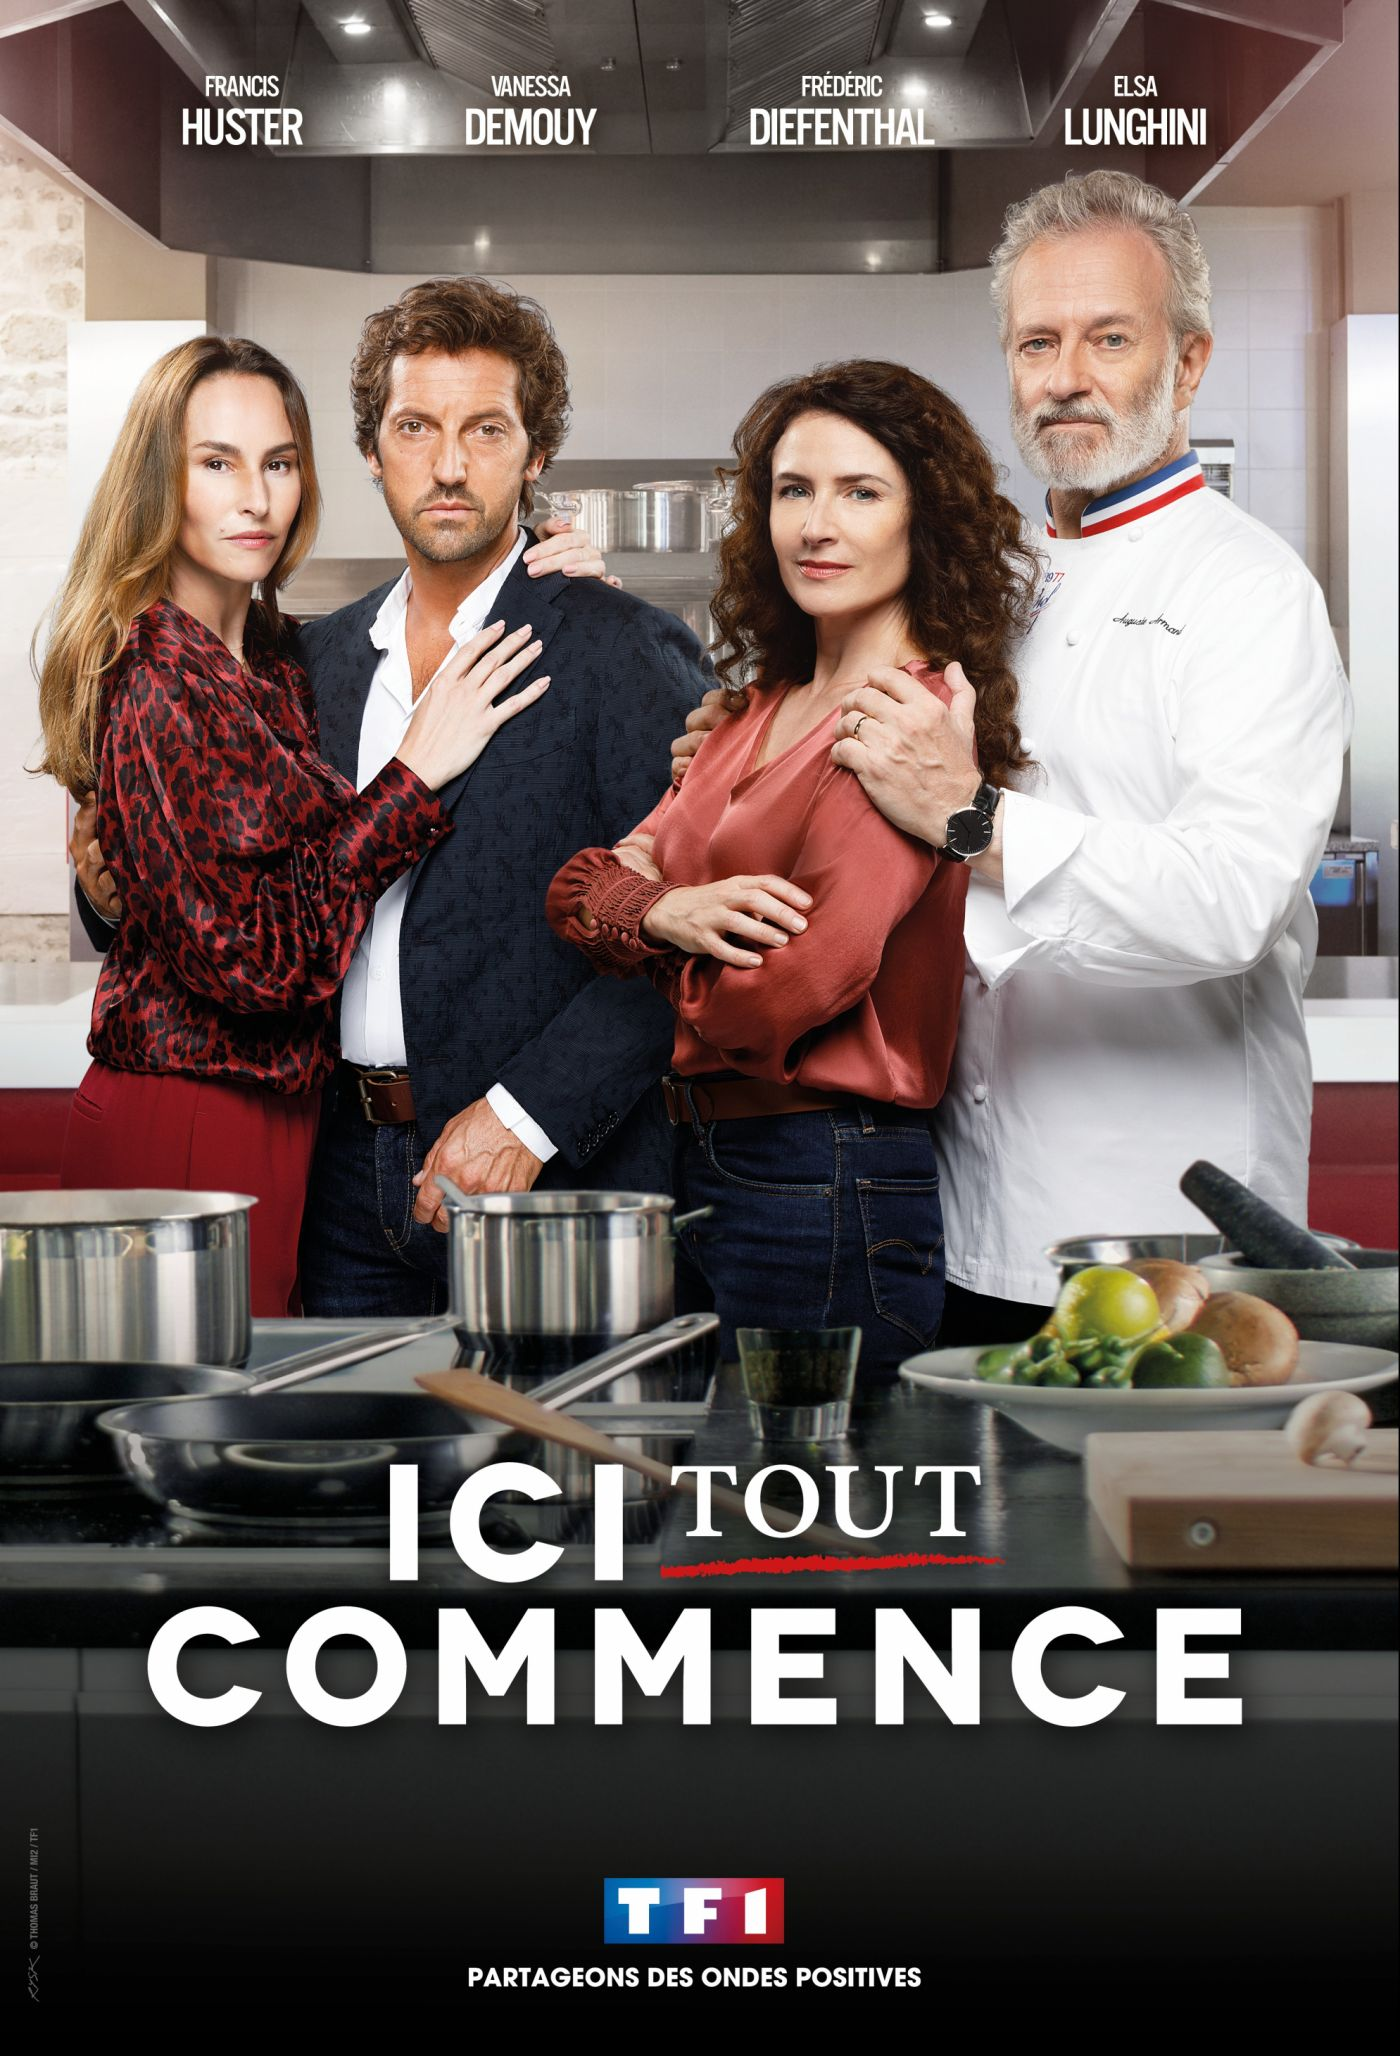 Vanessa Demouy, Frédéric Diefenthal, Francis Huster, and Elsa Lunghini in Ici Tout Commence (2020)